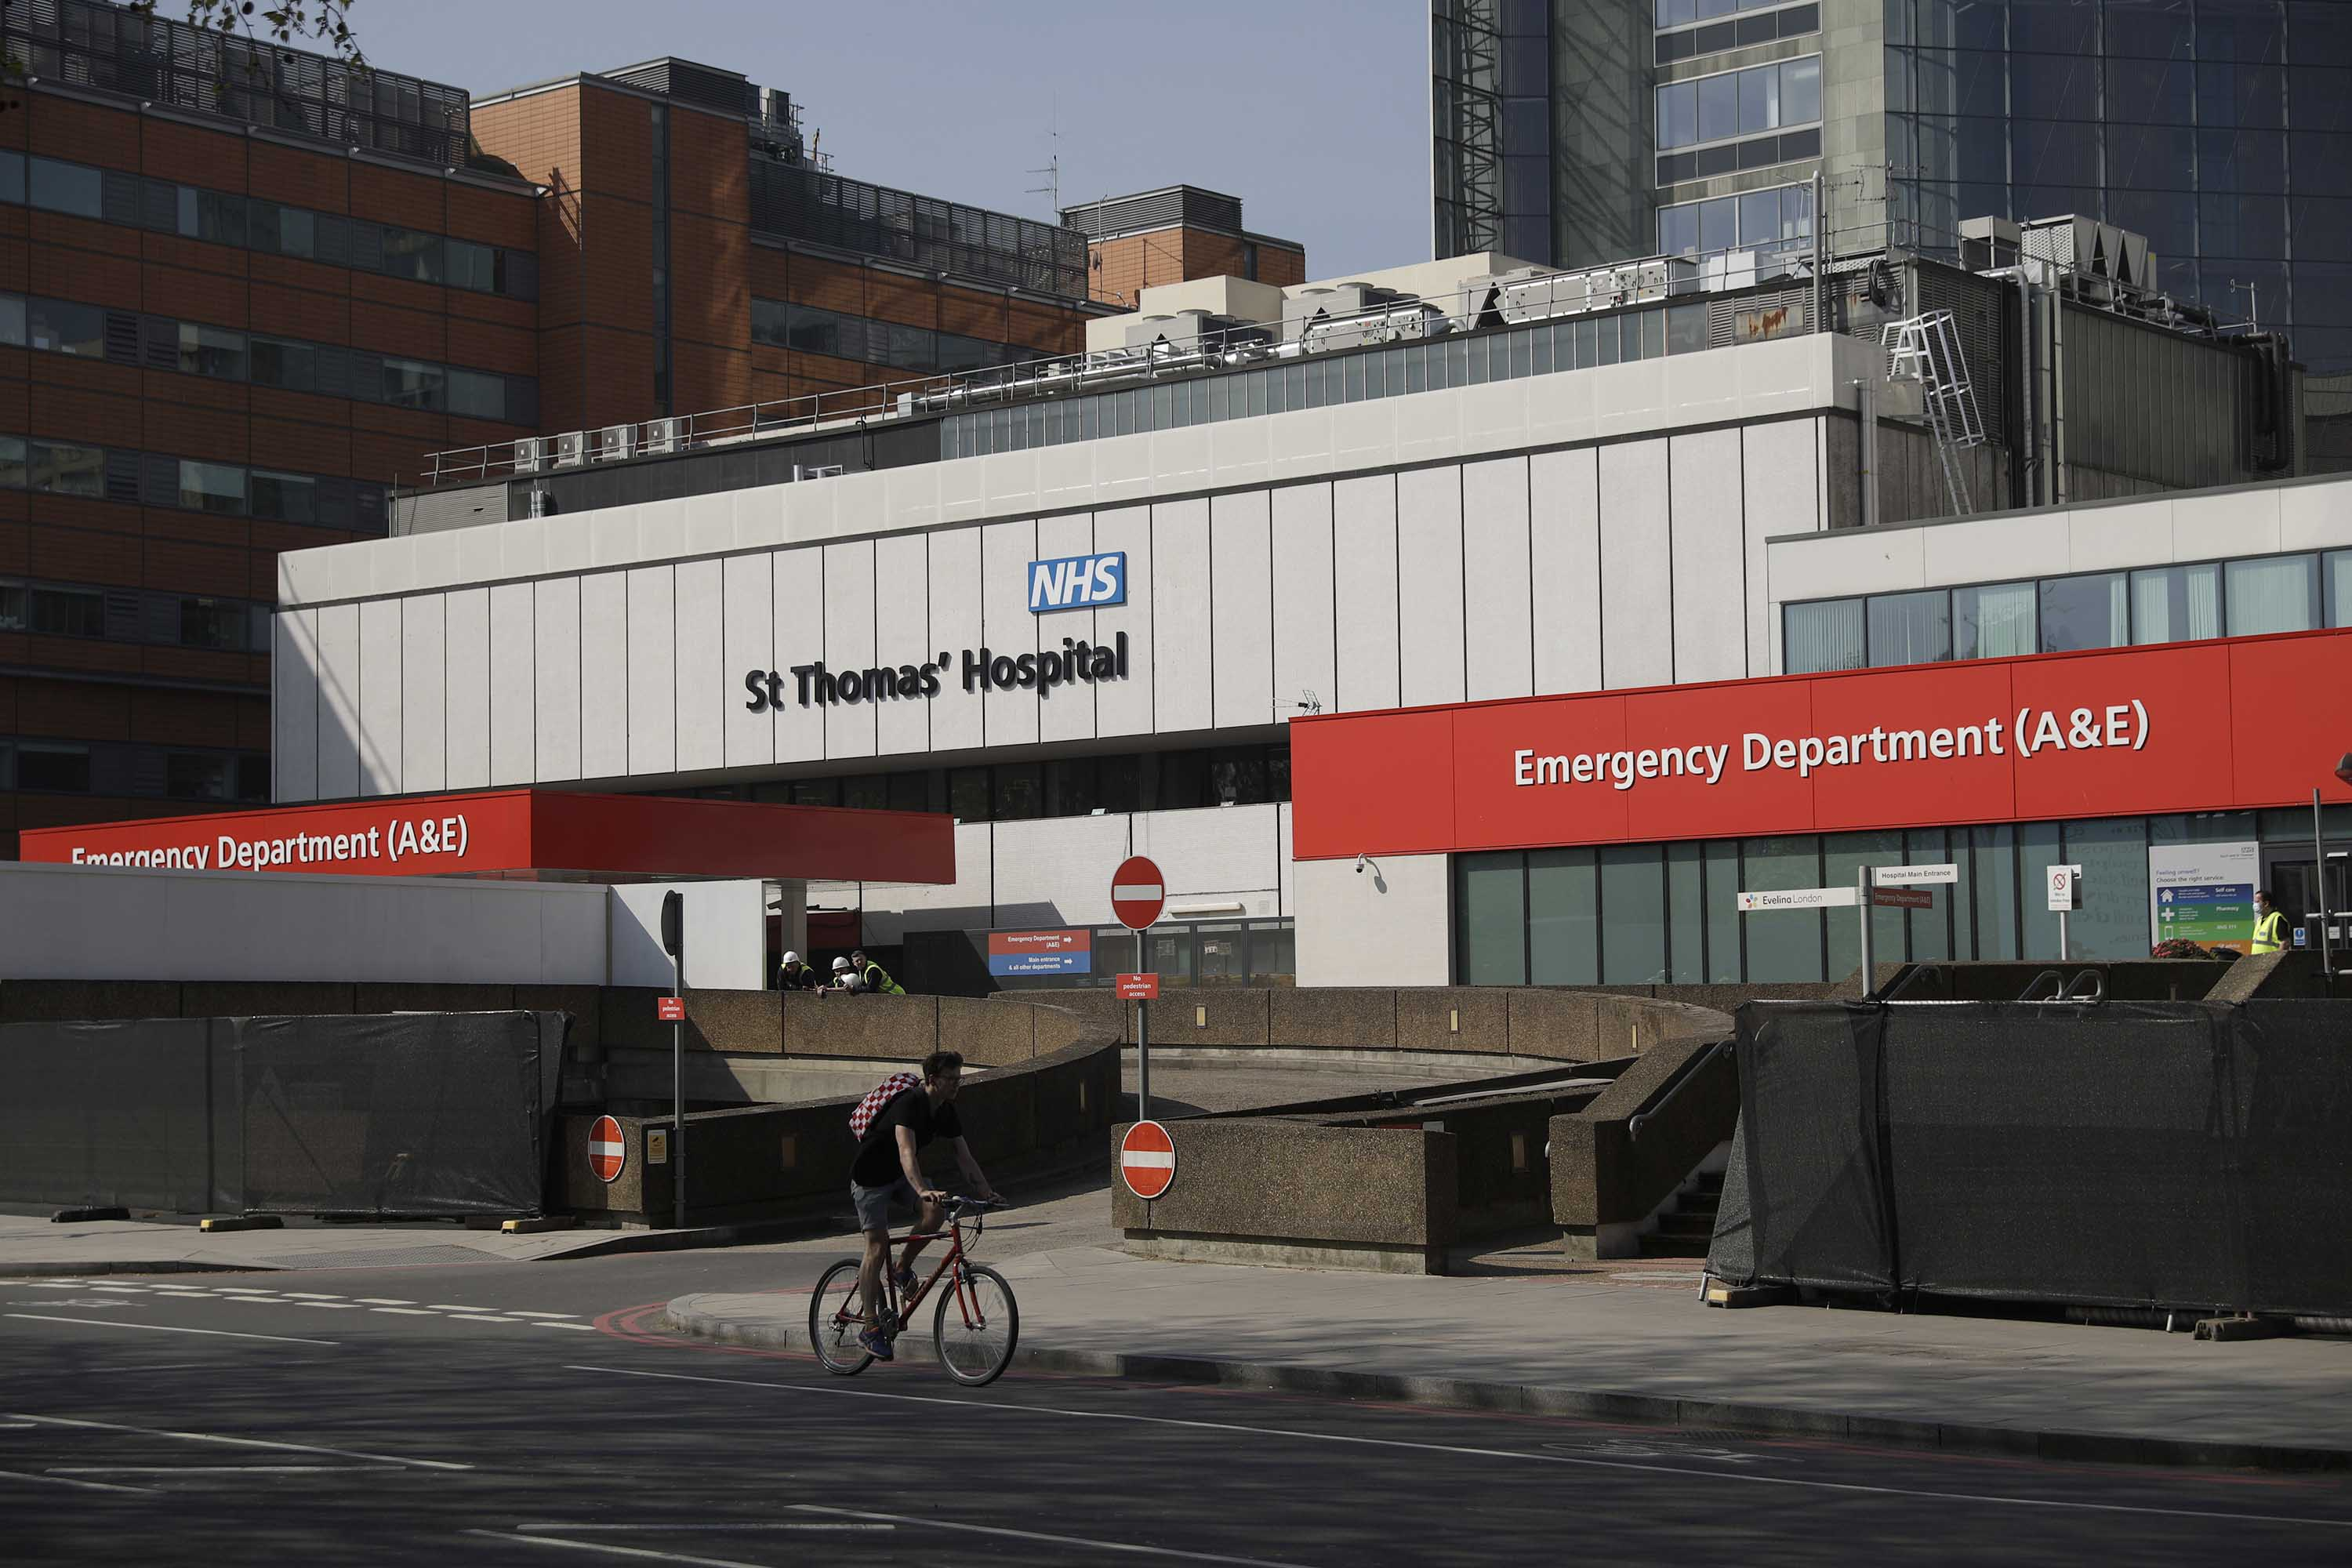 St Thomas' Hospital in London, where British Prime Minister Boris Johnson is being treated for coronavirus, is pictured on April 10.